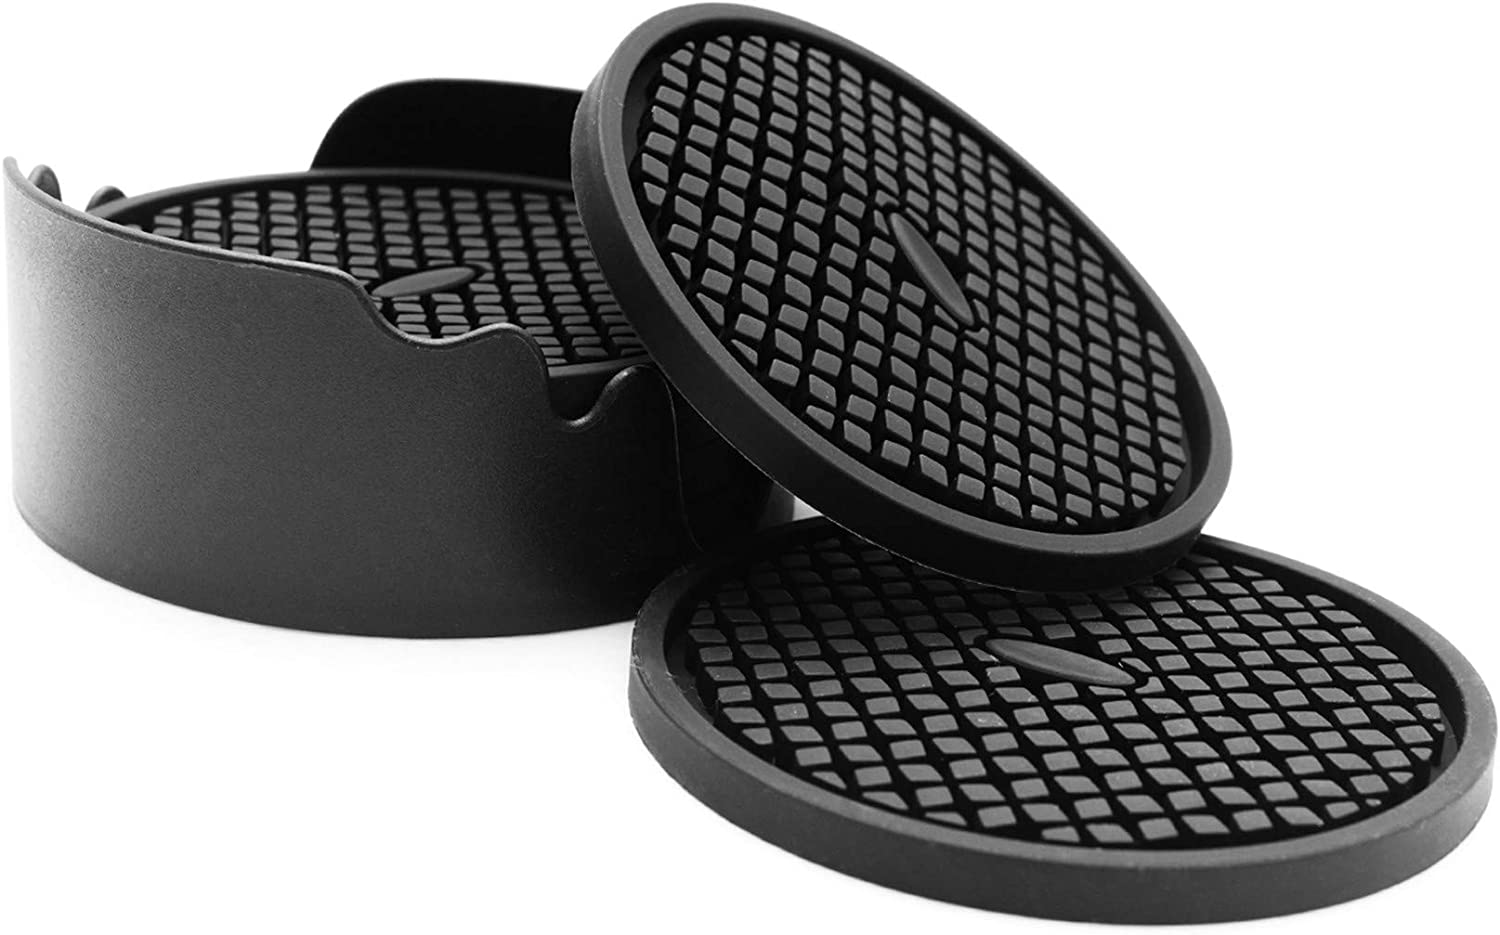 IYYI Silicone Drink Coasters Set of 6 in Holder, Cup Coaster for Drinks Deep Grooved Absorbent Coaster Protect Furniture from Damage Large 4 inch Cup Mat (Black)